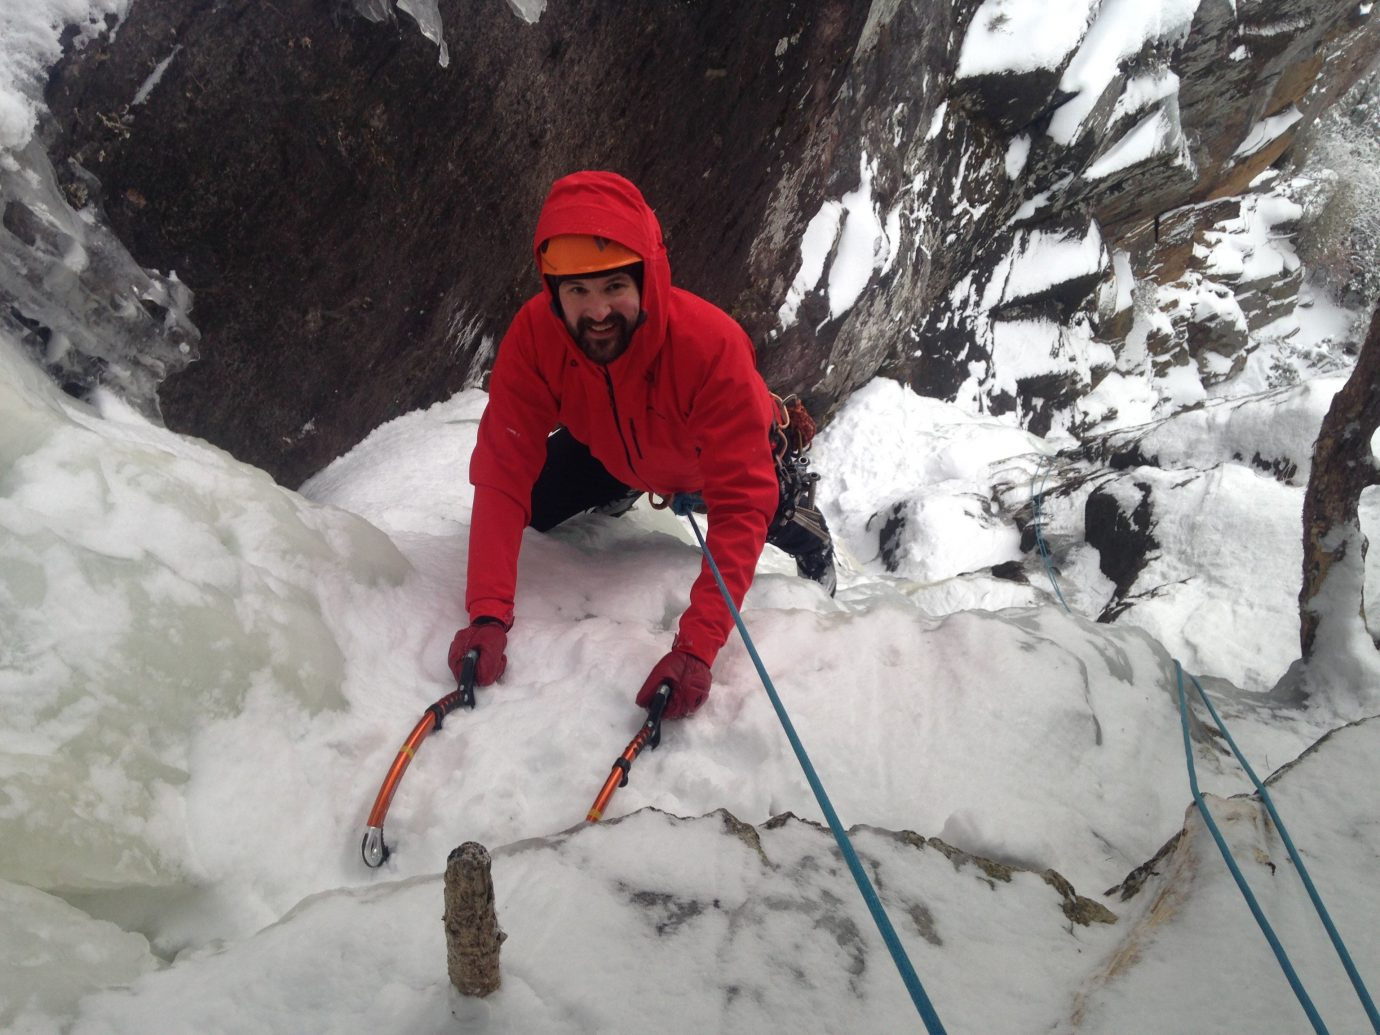 snow outdoor mountaineering climbing mountaineer person red Adventure igloo ridge geological phenomenon ice ice climbing glacial landform freezing Nature extreme sport sport climbing arête Winter mountain guide rock climbing equipment belay device mountain recreation hill ski touring ski mountaineering trekking pole slope skiing